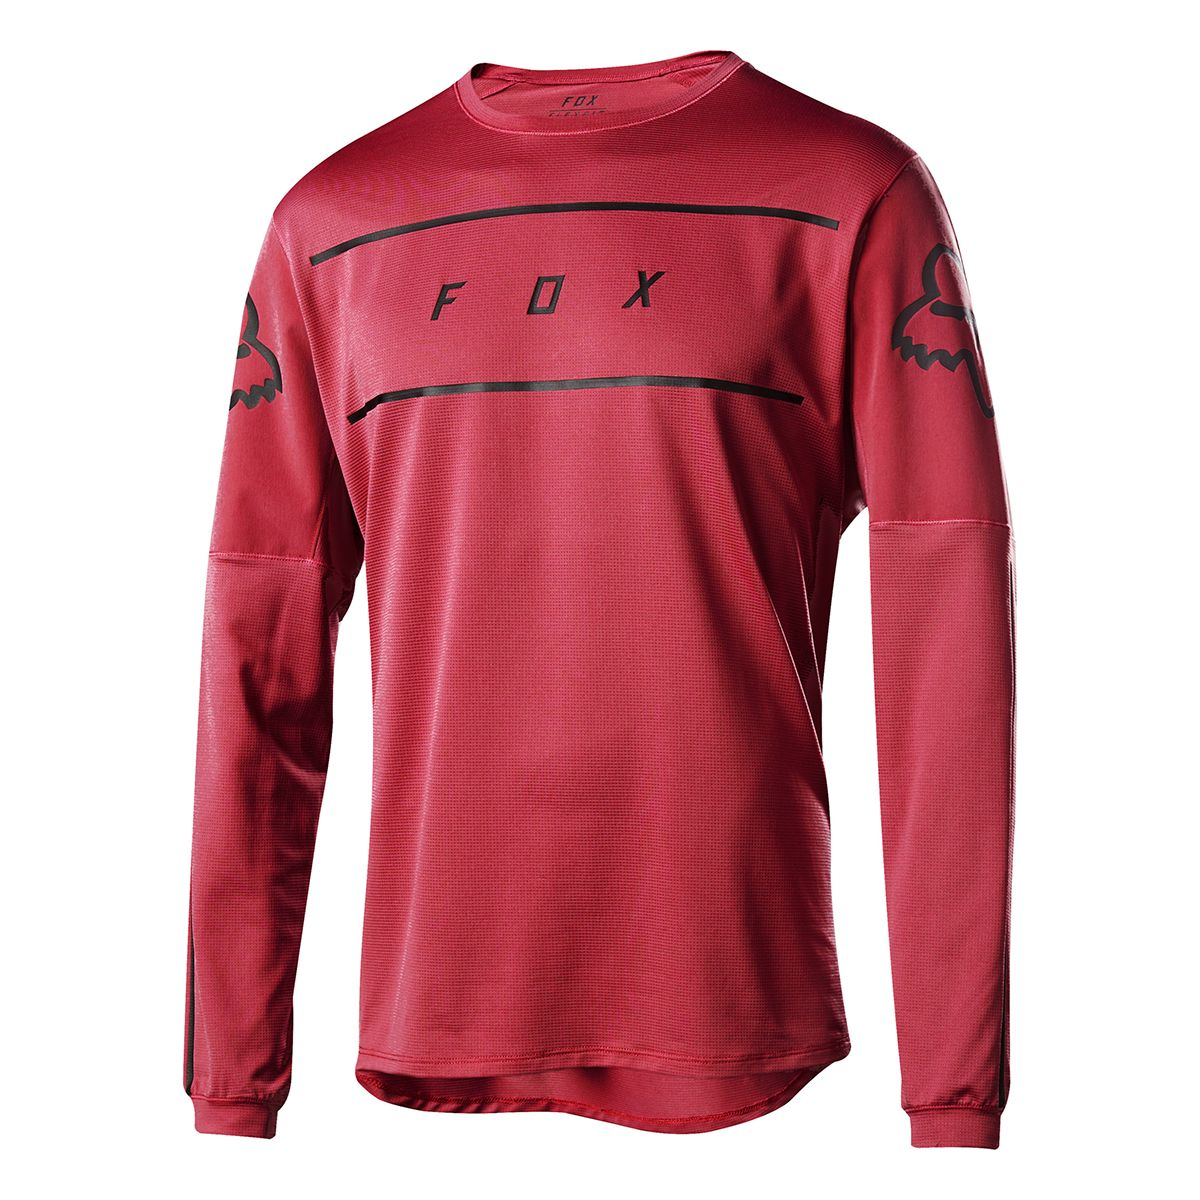 FLEXAIR LS FINE LINE JERSEY men's long-sleeved bike shirt